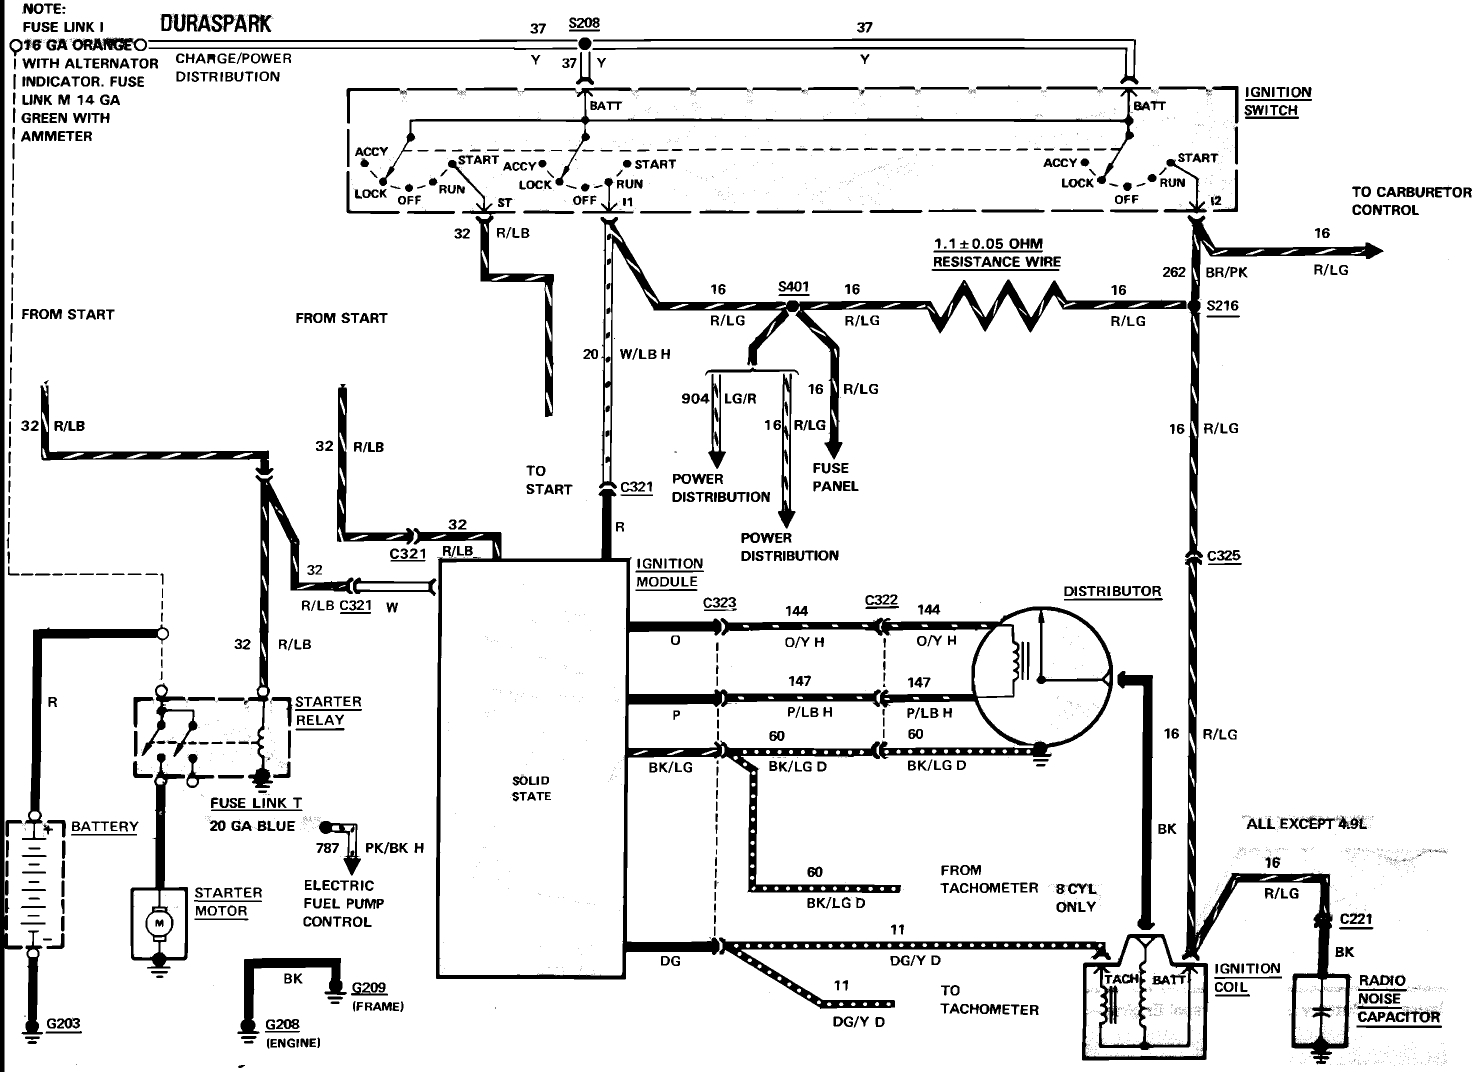 1989 ford f150 ignition wiring diagram | free wiring diagram 89 chevy tail light wiring schematic